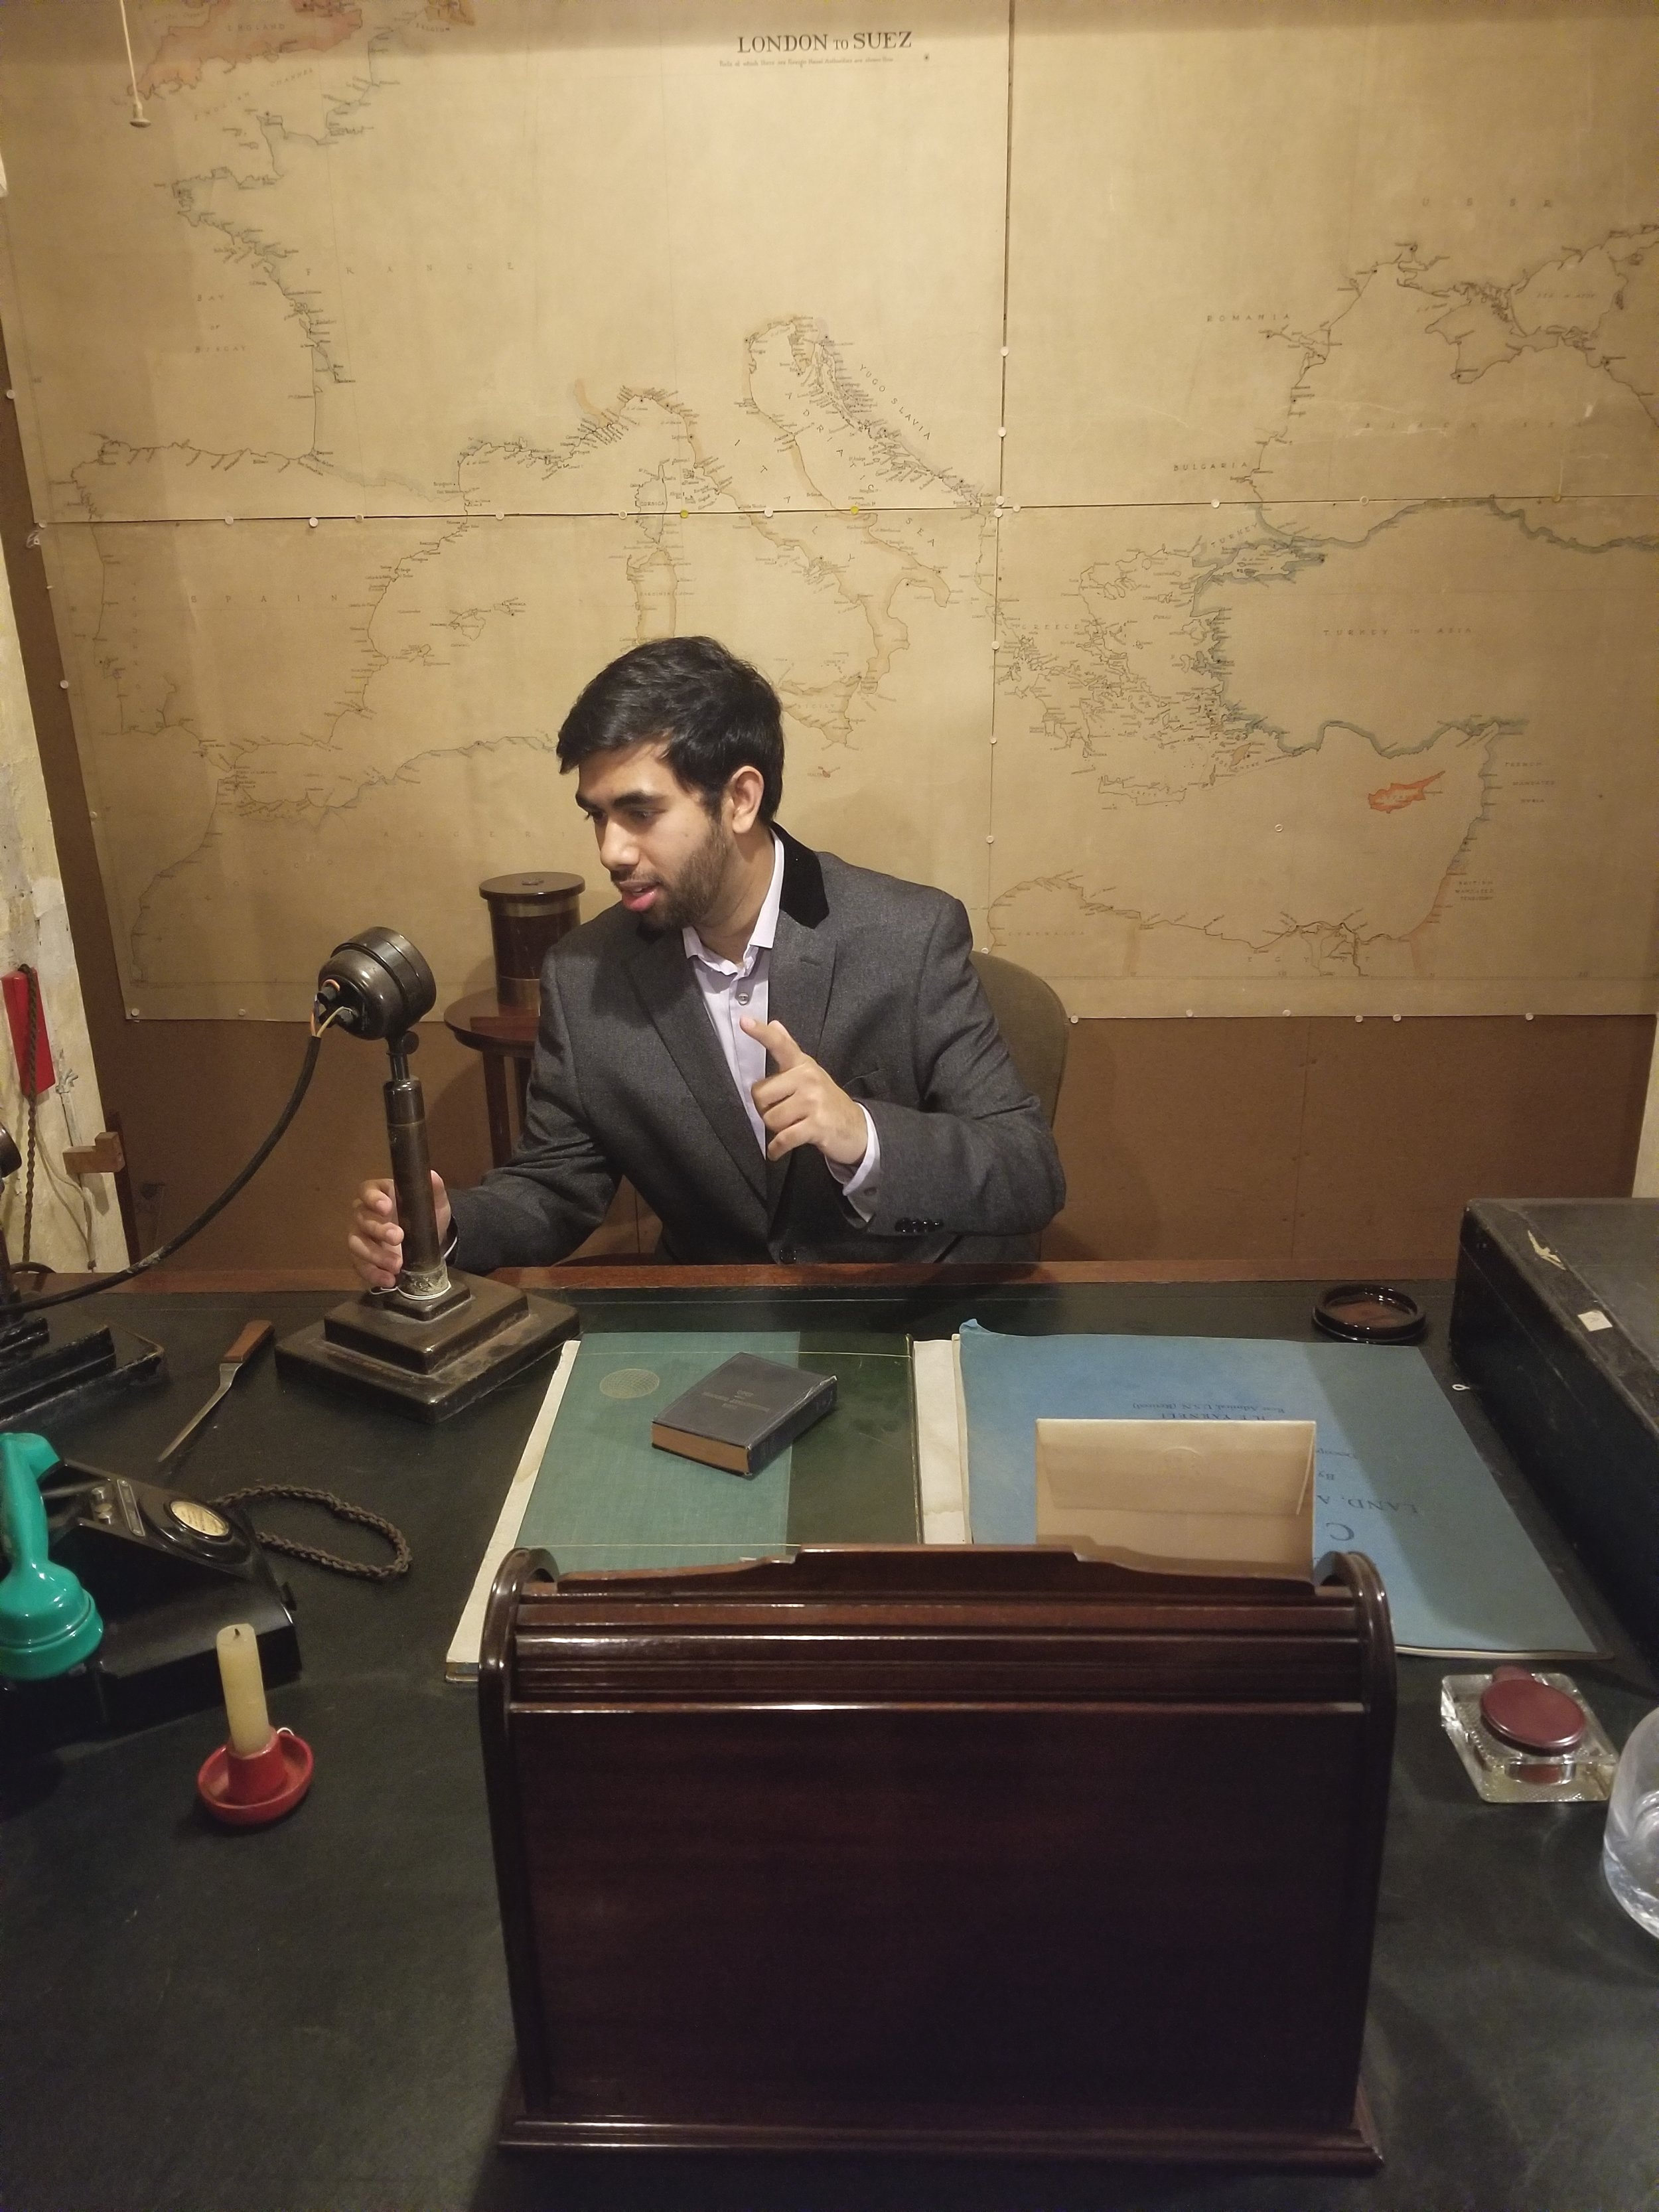 England - Yousuf Khan, class of 2018, from Winston Churchill's desk where he addressed the nation during WWII. Yousuf is at the University of Cambridge earning a Master's of Philosophy in Pathology.